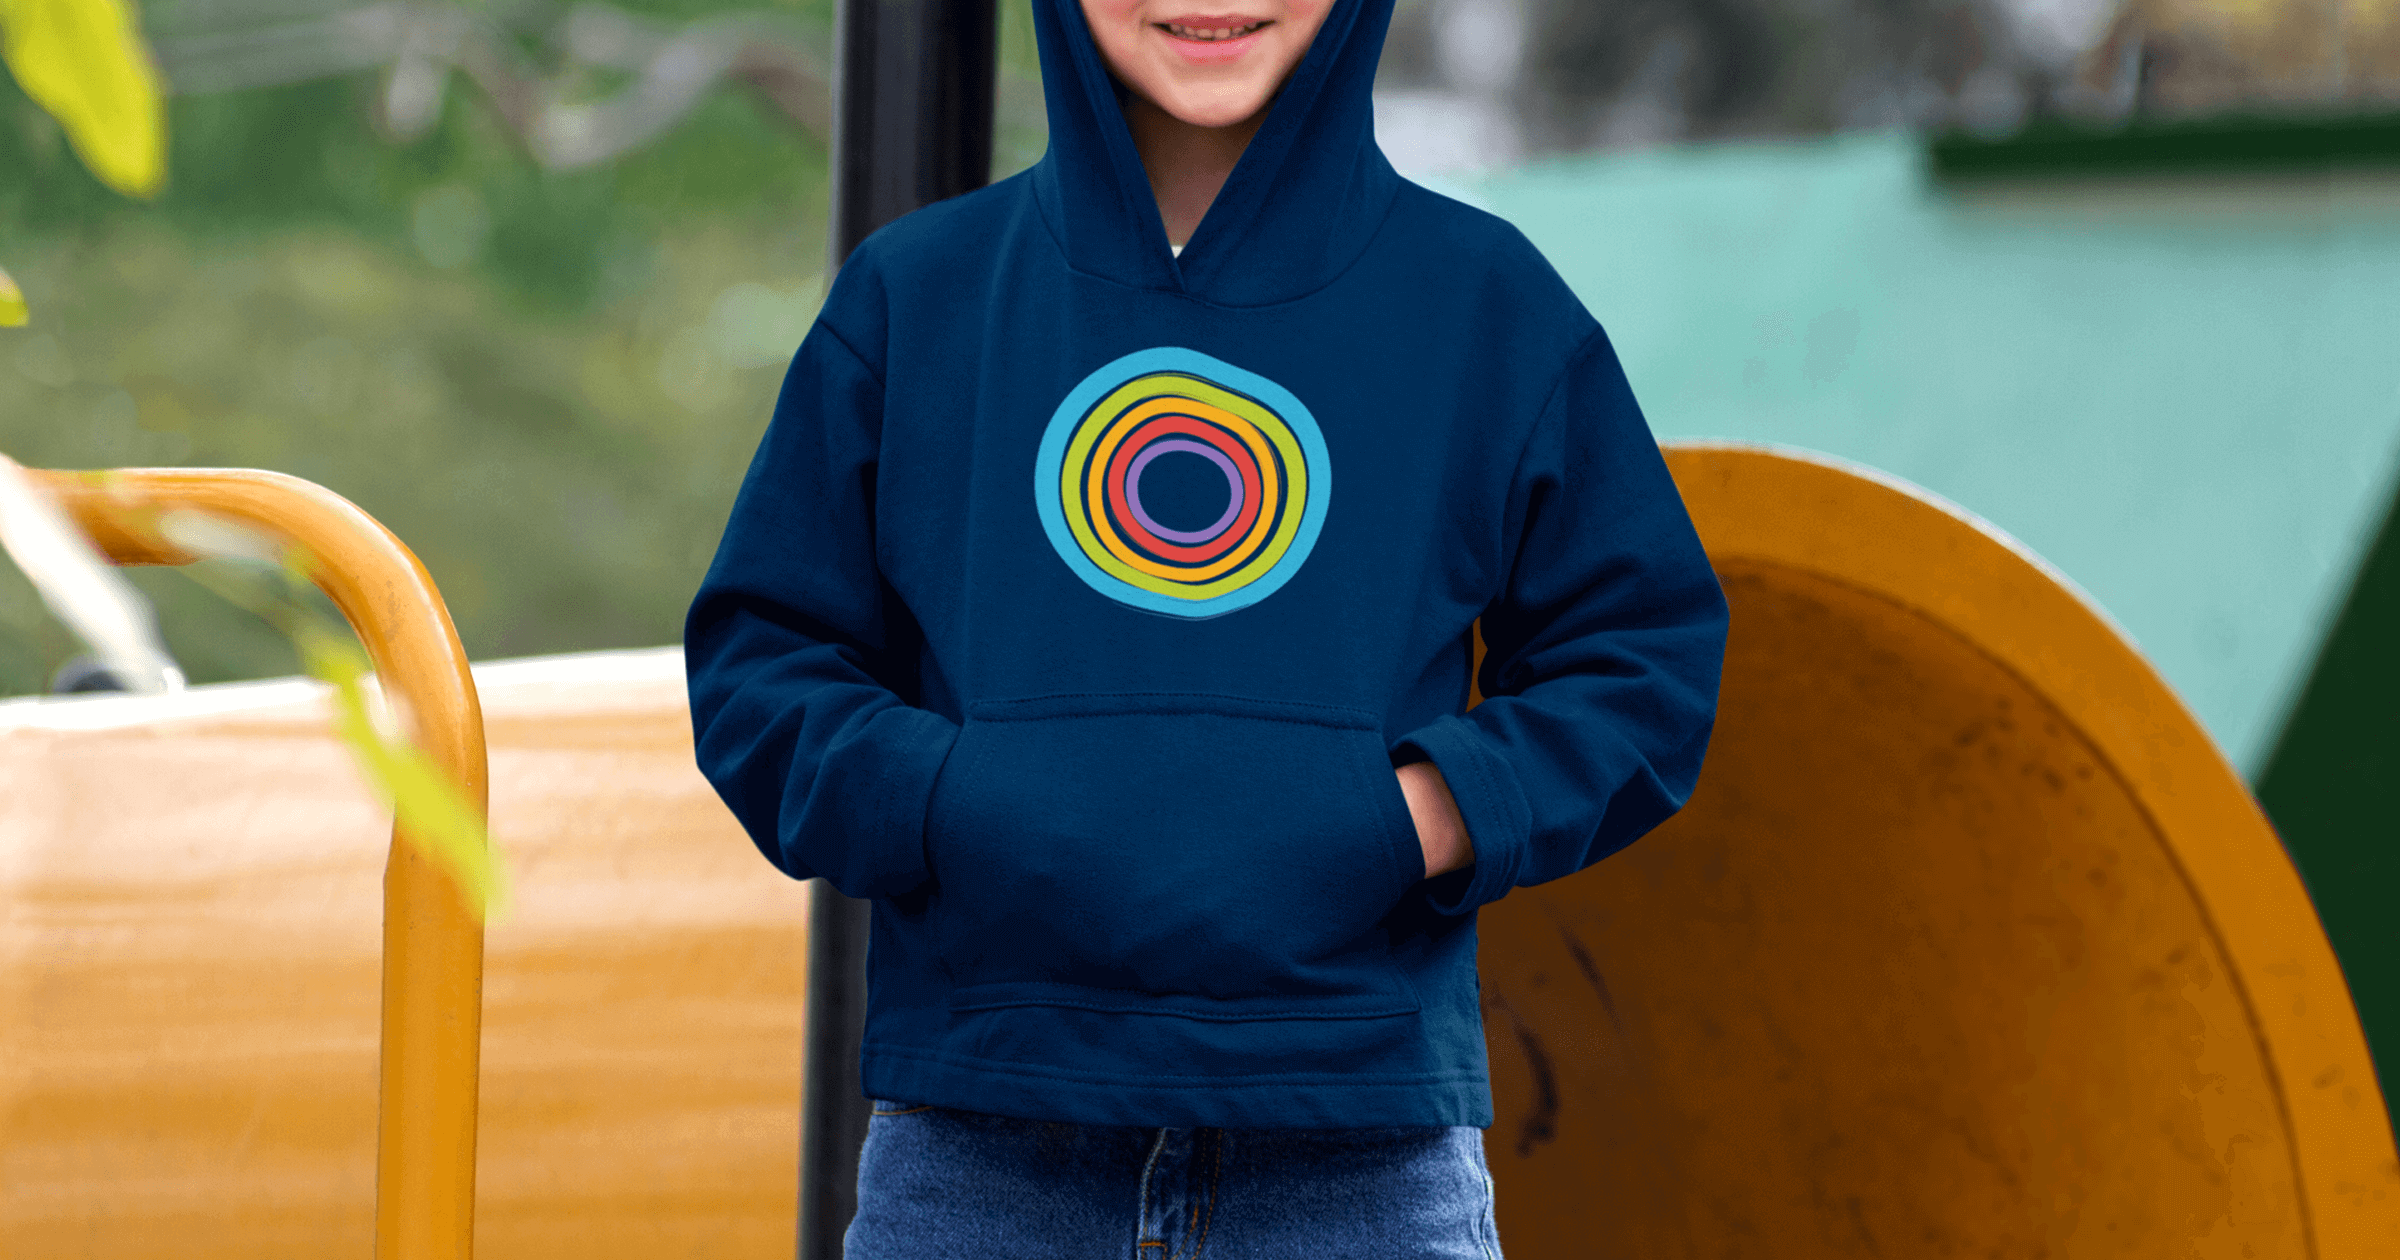 The First School hoody